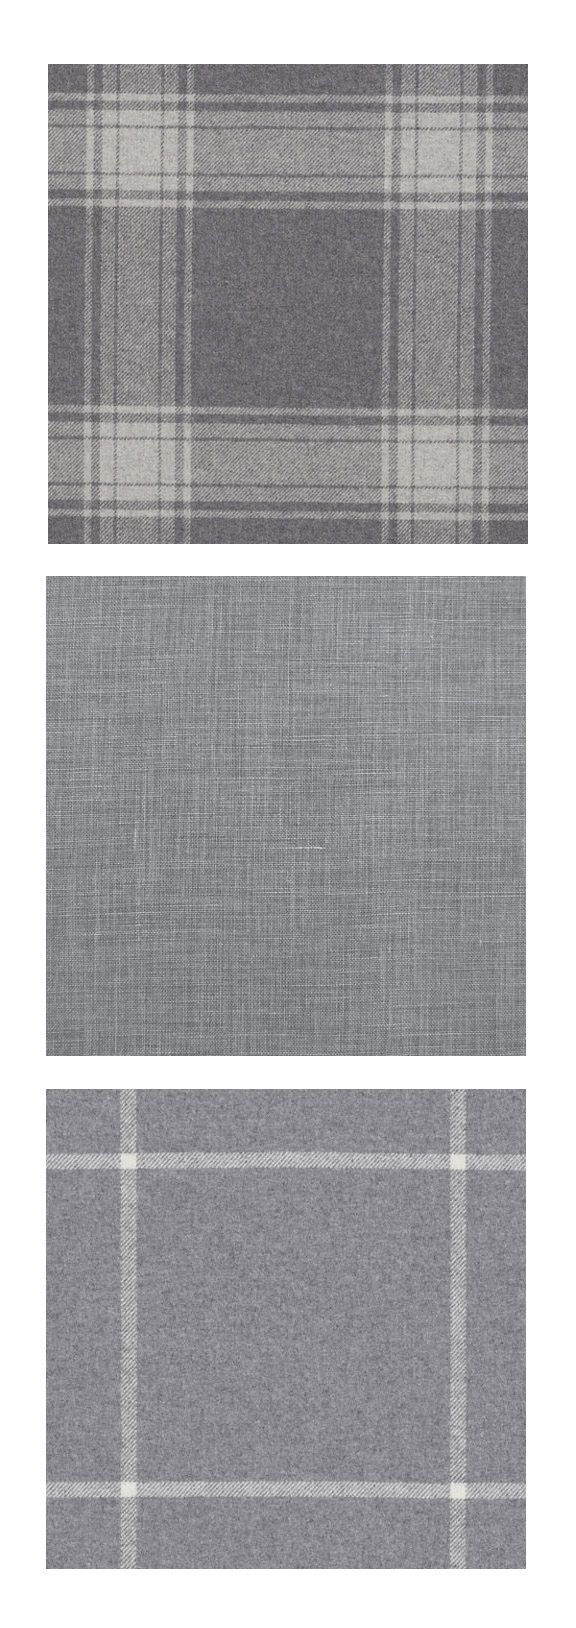 Exquisite silks, understated wools and washed linens, all in shades of sophisticated grey. Grey Book Fabric Collection from Ralph Lauren Home.